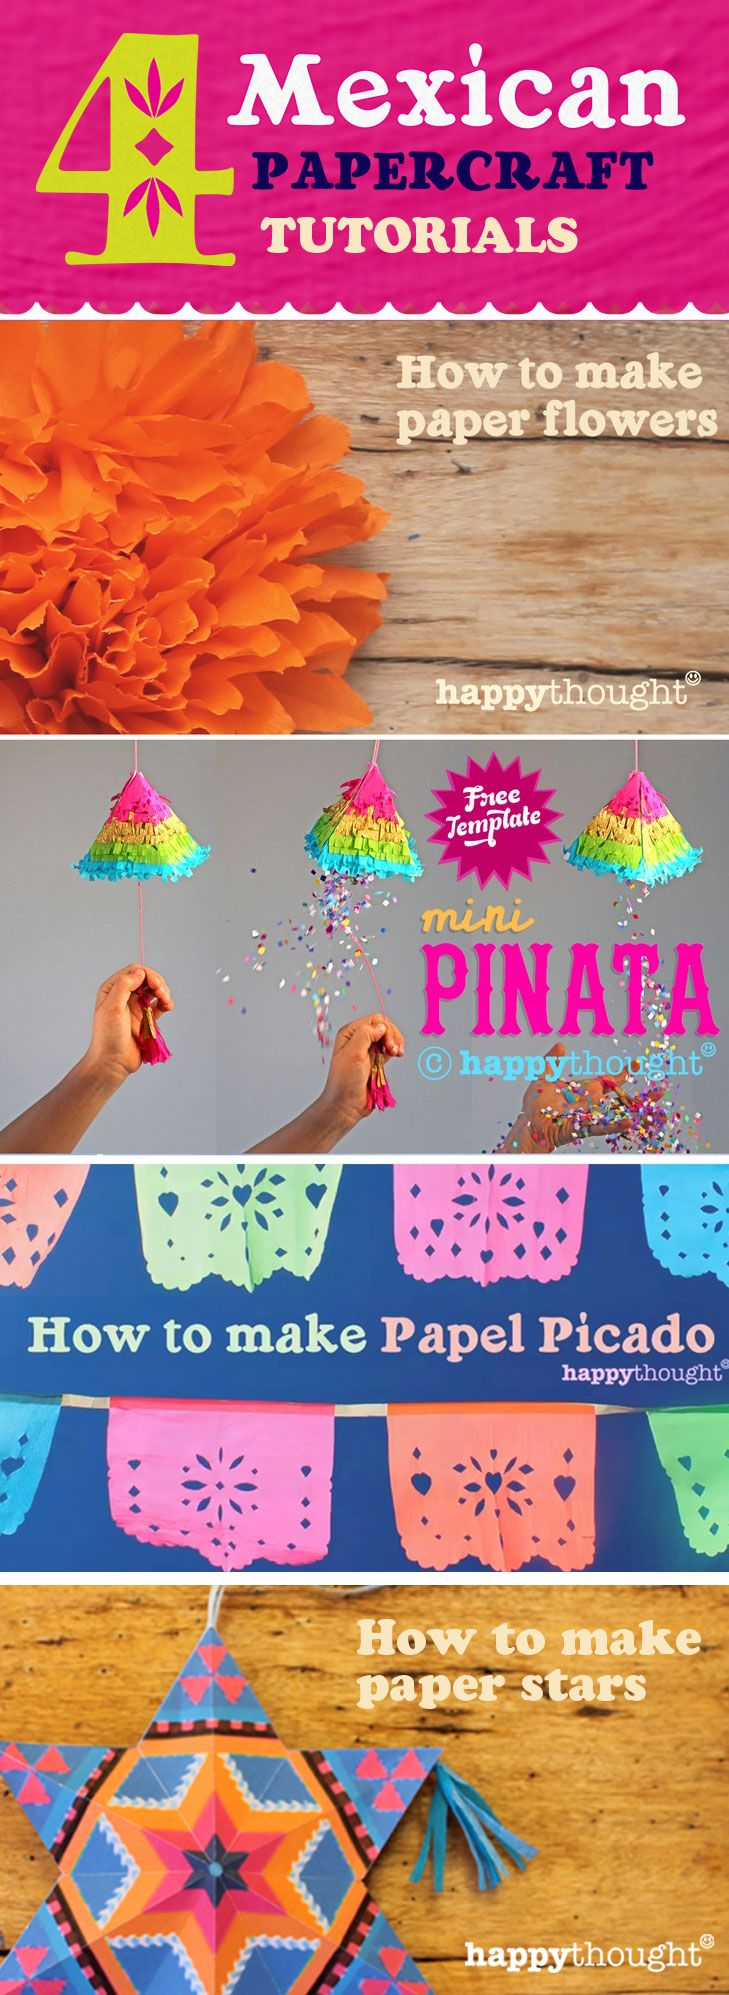 4 Mexican paper crafts for Day of the Dead decorations: Simple and fun craft tutorials inspired by Mexican Artisan paper decorations: Pinatas, paper stars, papel picado and paper flowers! https://happythought.co.uk/mexican-paper-craft-decorations #mexicancrafts #papelpicado #paperflowers #dayofthedead